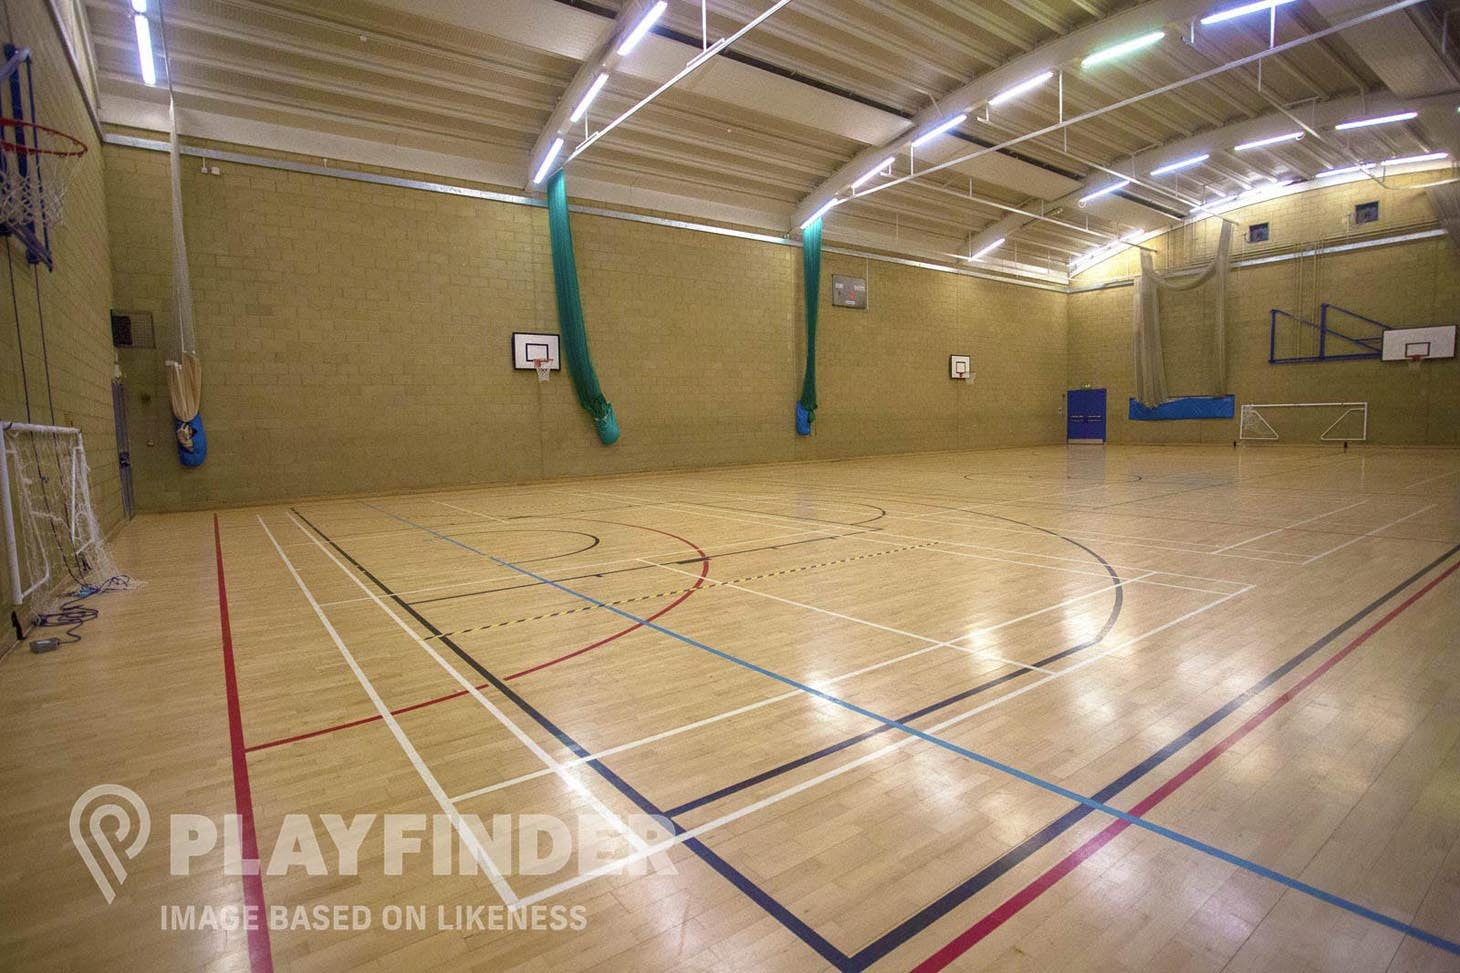 Luton Sixth Form College Sports hall space hire